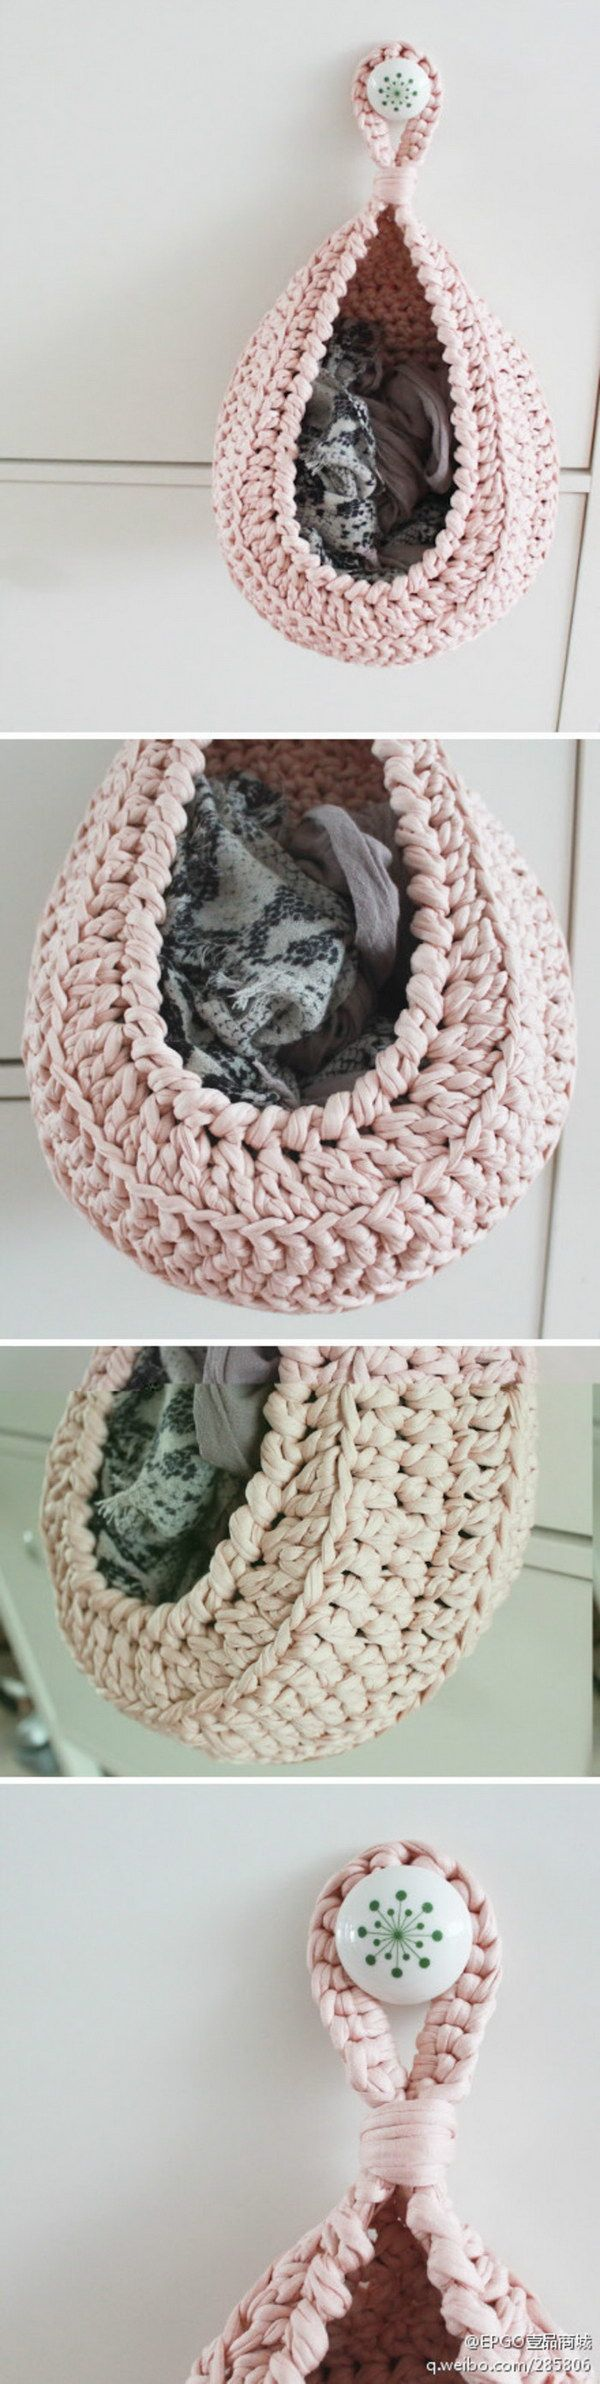 10 free crochet basket patterns for beginners crochet basket 30 easy crochet projects with free patterns for beginners bankloansurffo Image collections